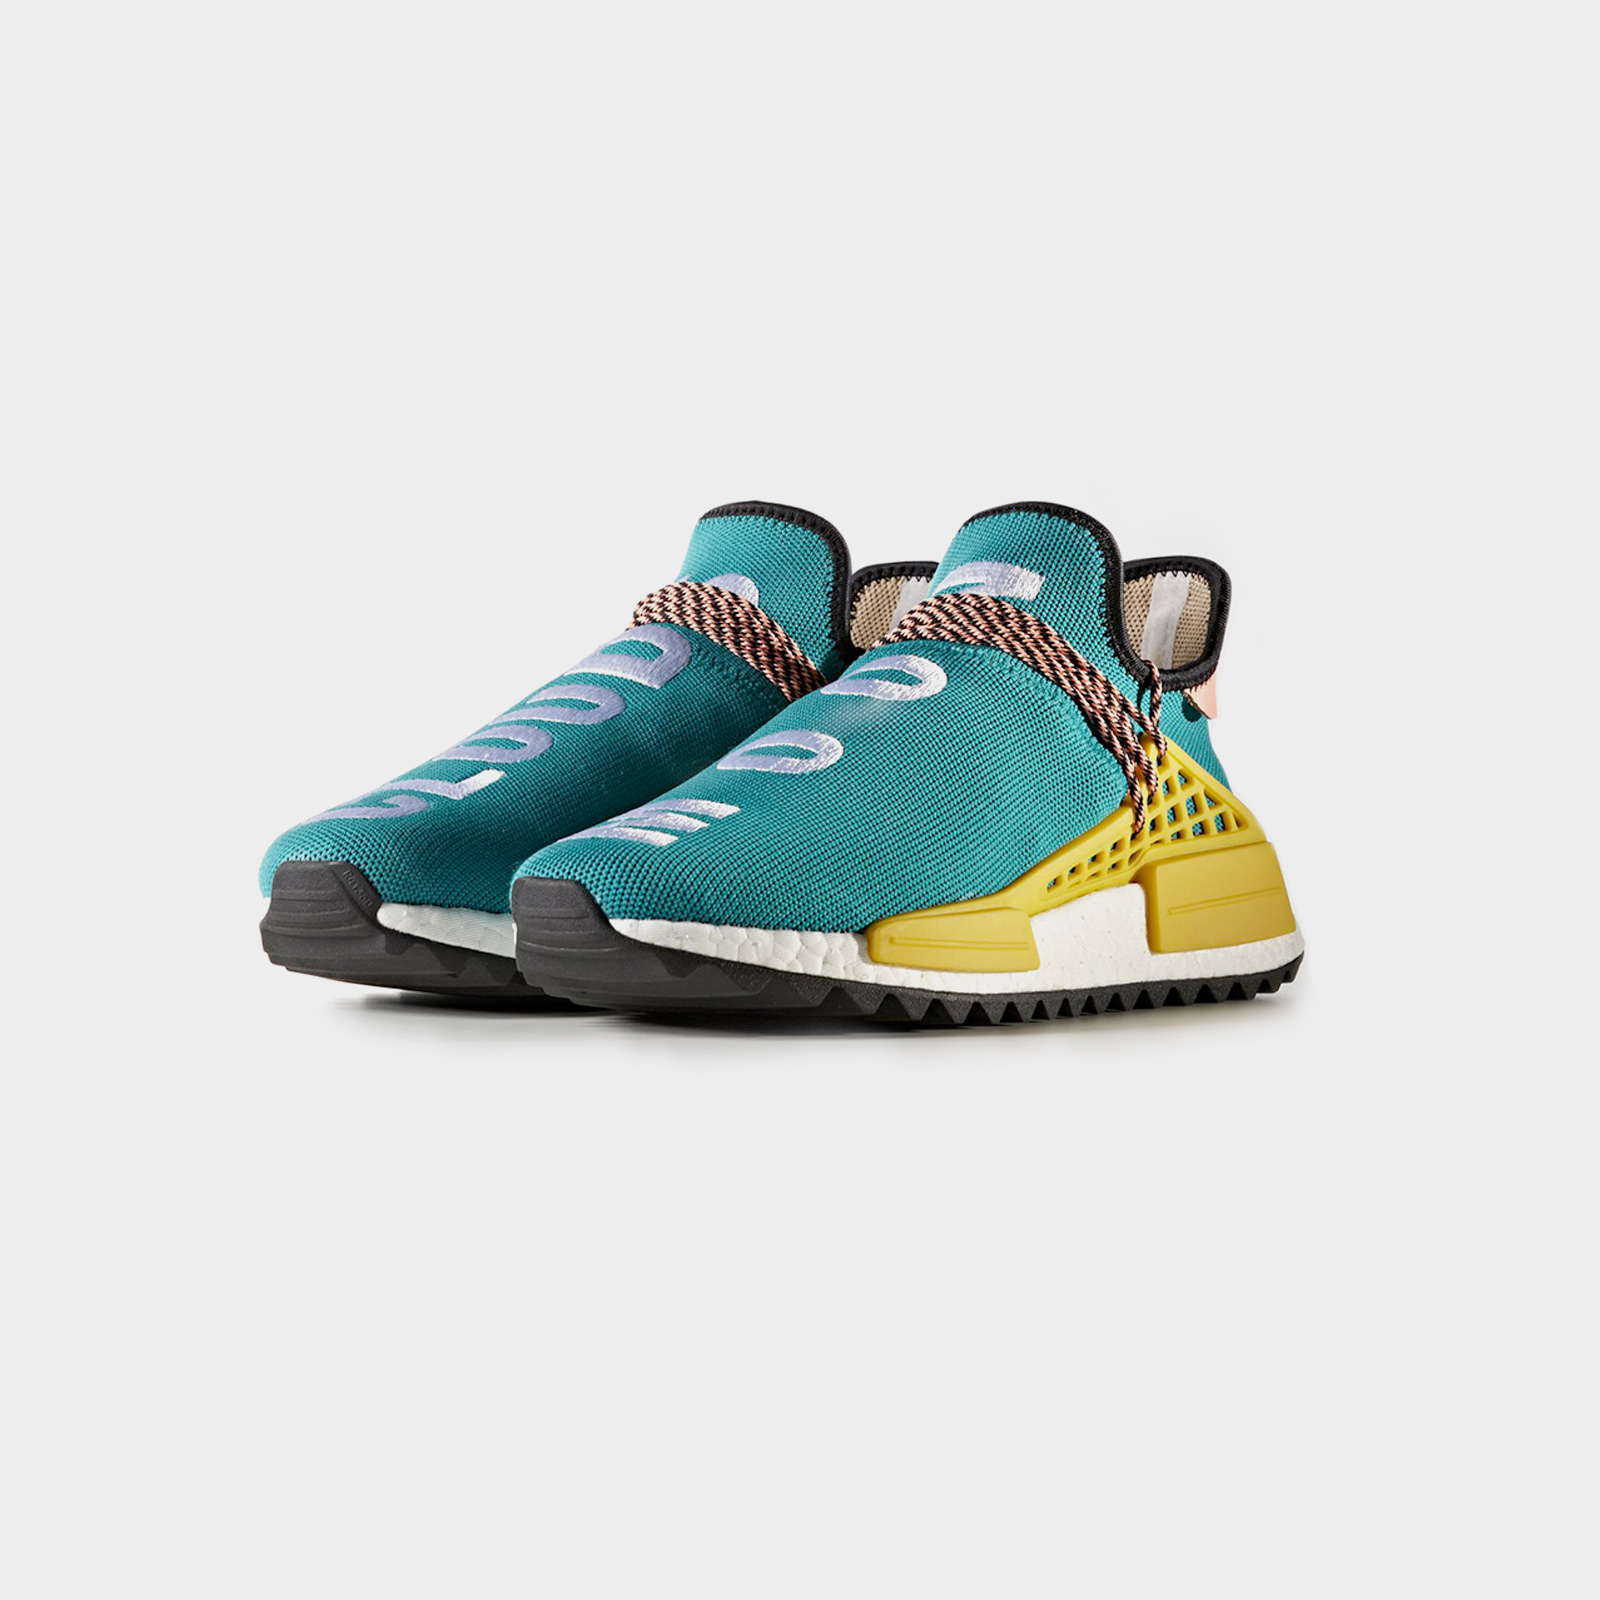 f8625c3af adidas PW Human Race NMD T - Ac7188 - Sneakersnstuff I Sneakers    Streetwear online seit 1999